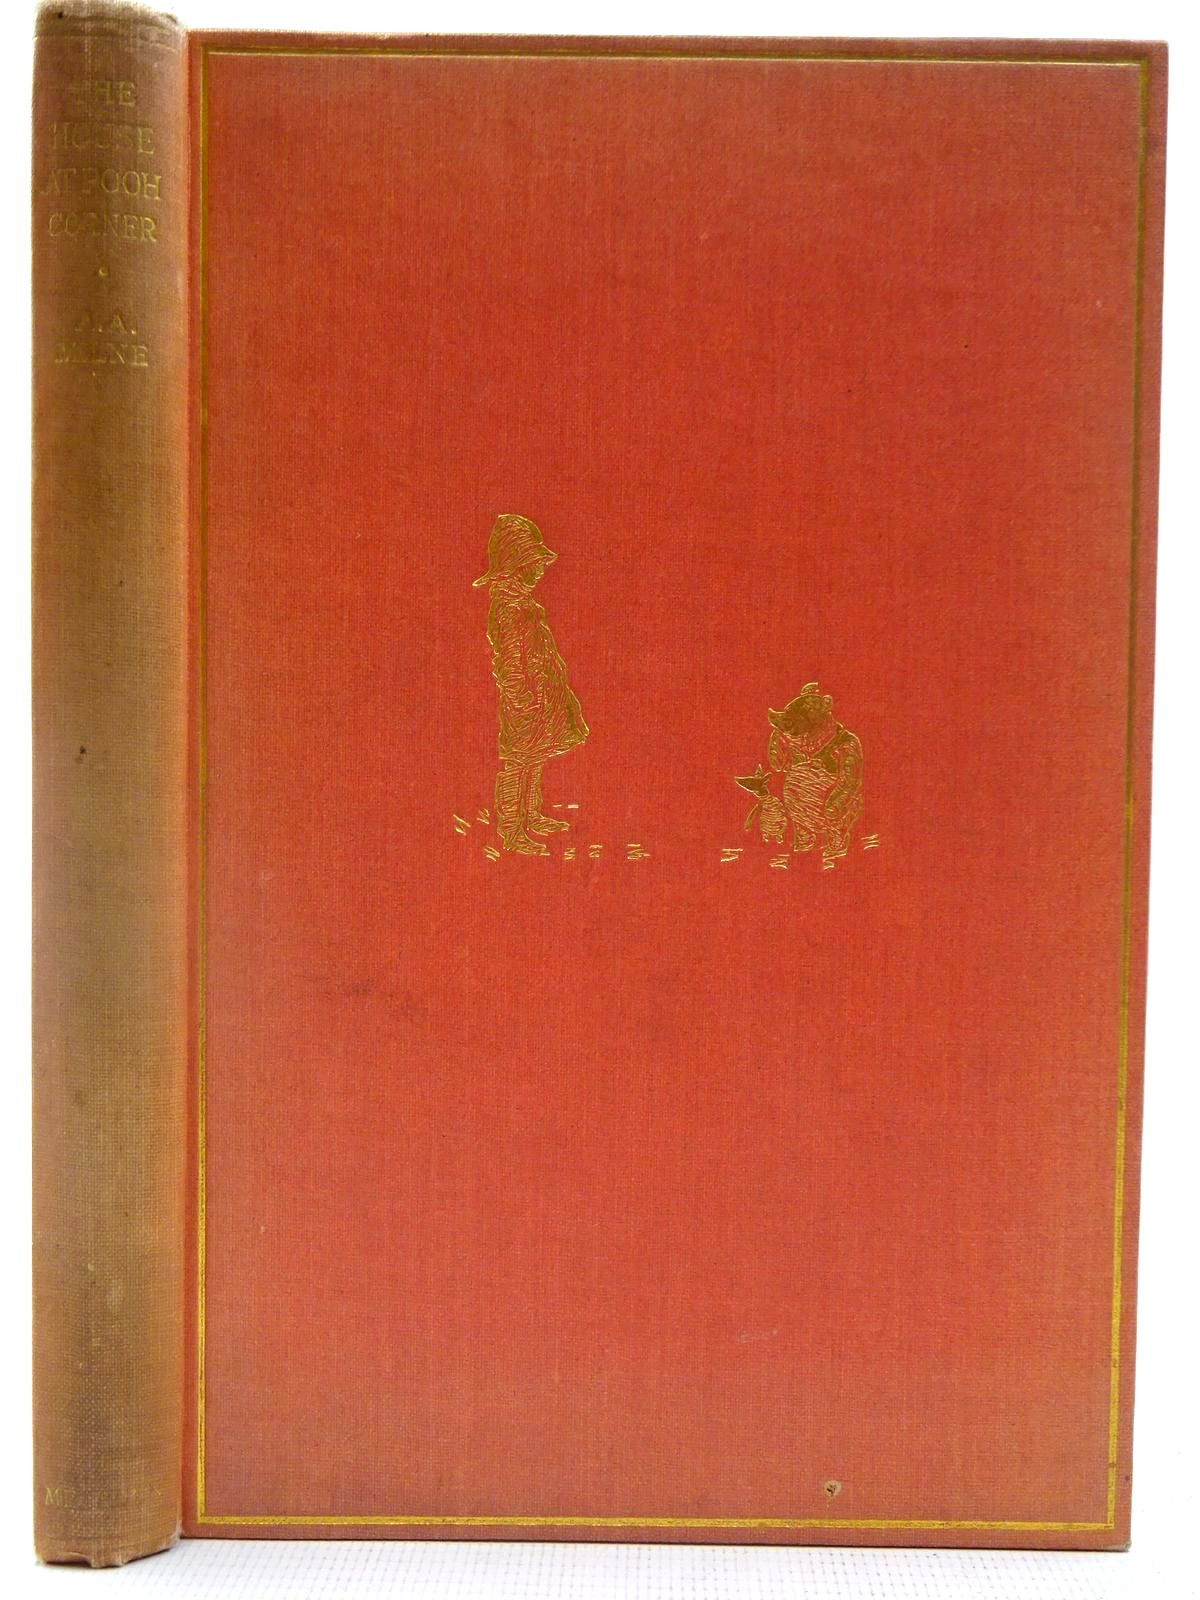 Photo of THE HOUSE AT POOH CORNER written by Milne, A.A. illustrated by Shepard, E.H. published by Methuen & Co. Ltd. (STOCK CODE: 2127503)  for sale by Stella & Rose's Books